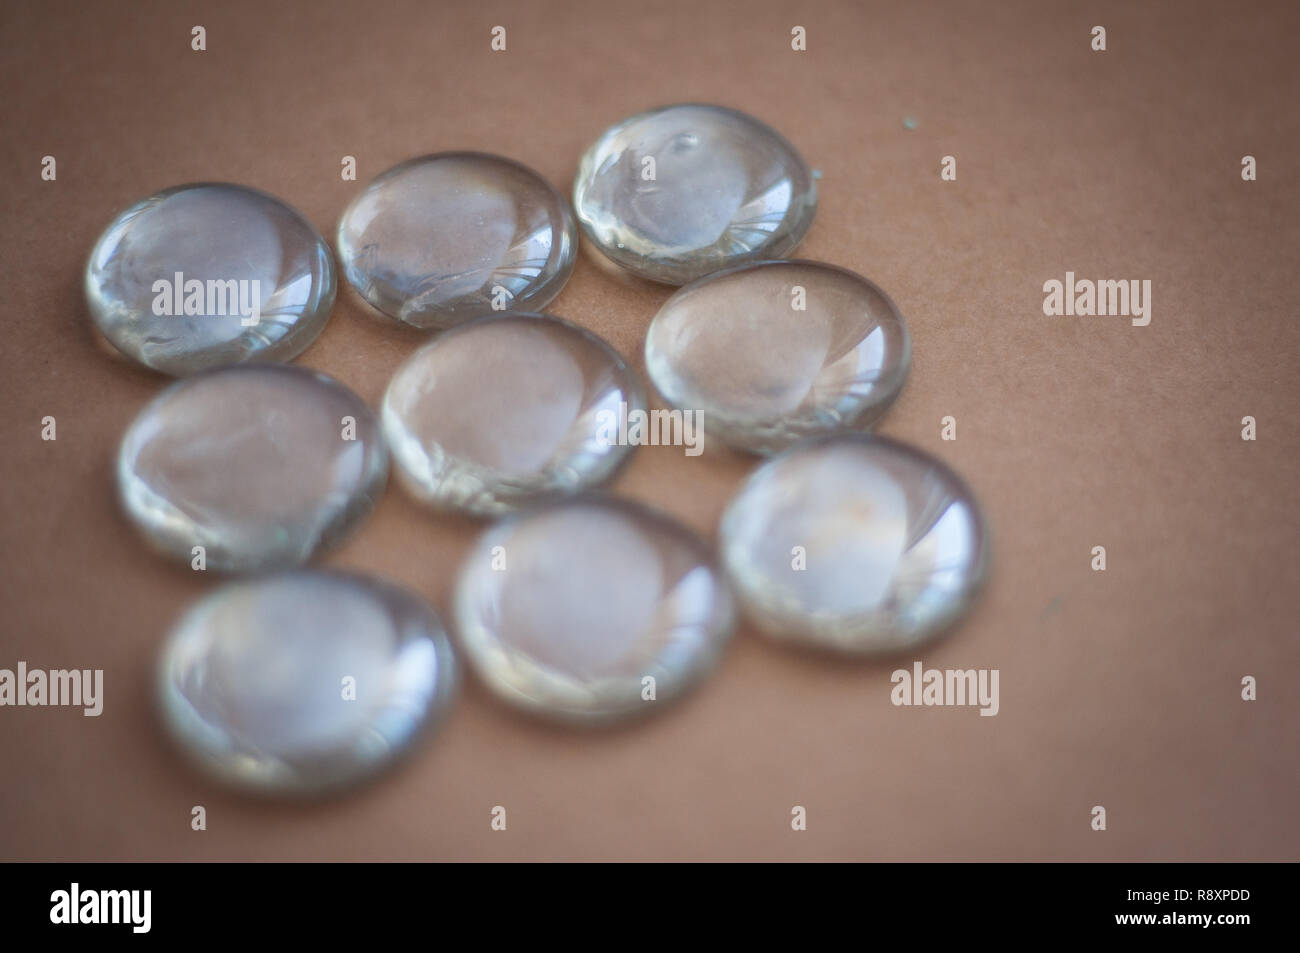 Clear marbles with light reflections on a brown background. - Stock Image